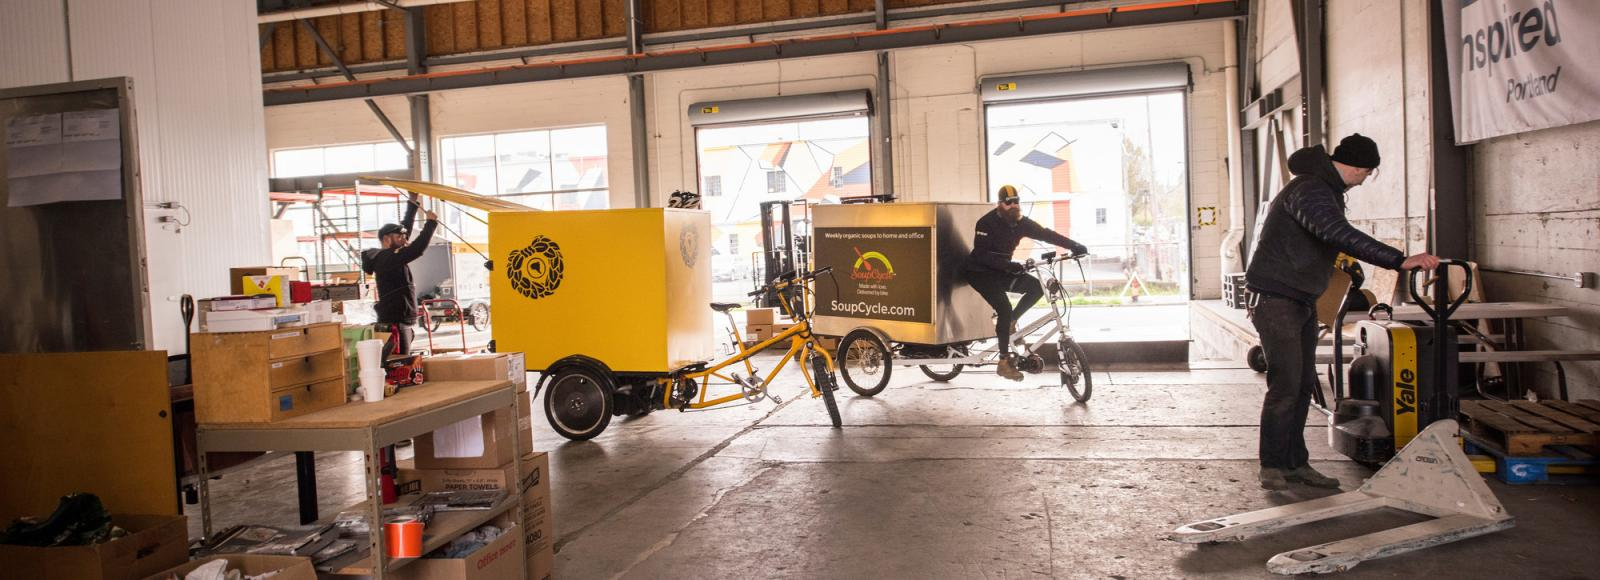 Two people inspect and ride bicycle trikes in a large warehouse.